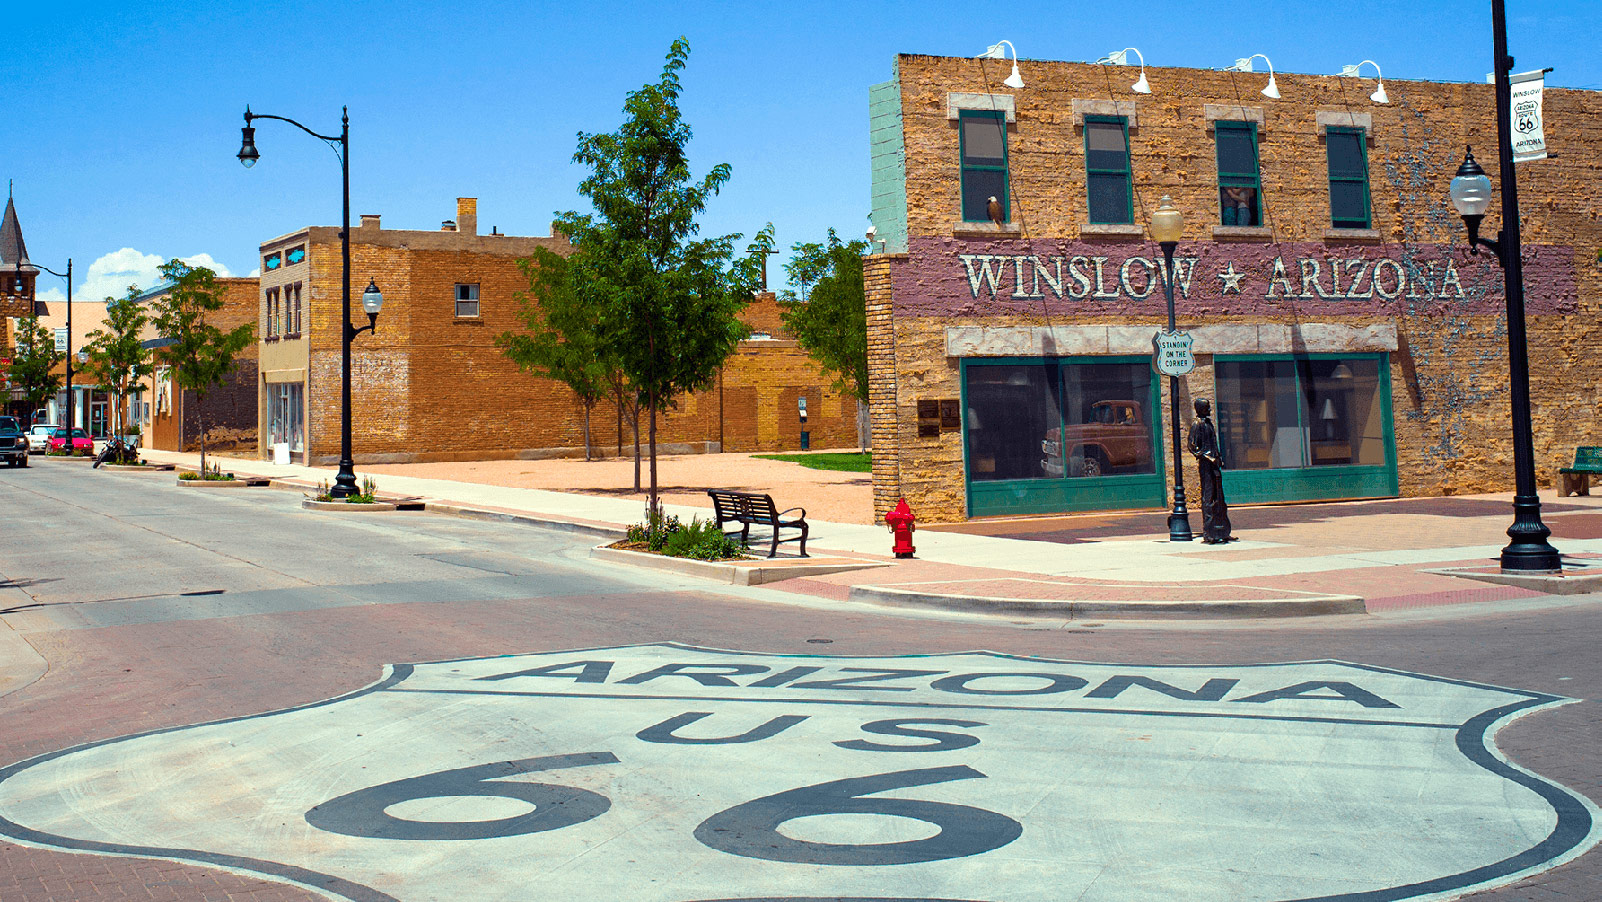 Route 66 sign in Winslow, Arizona